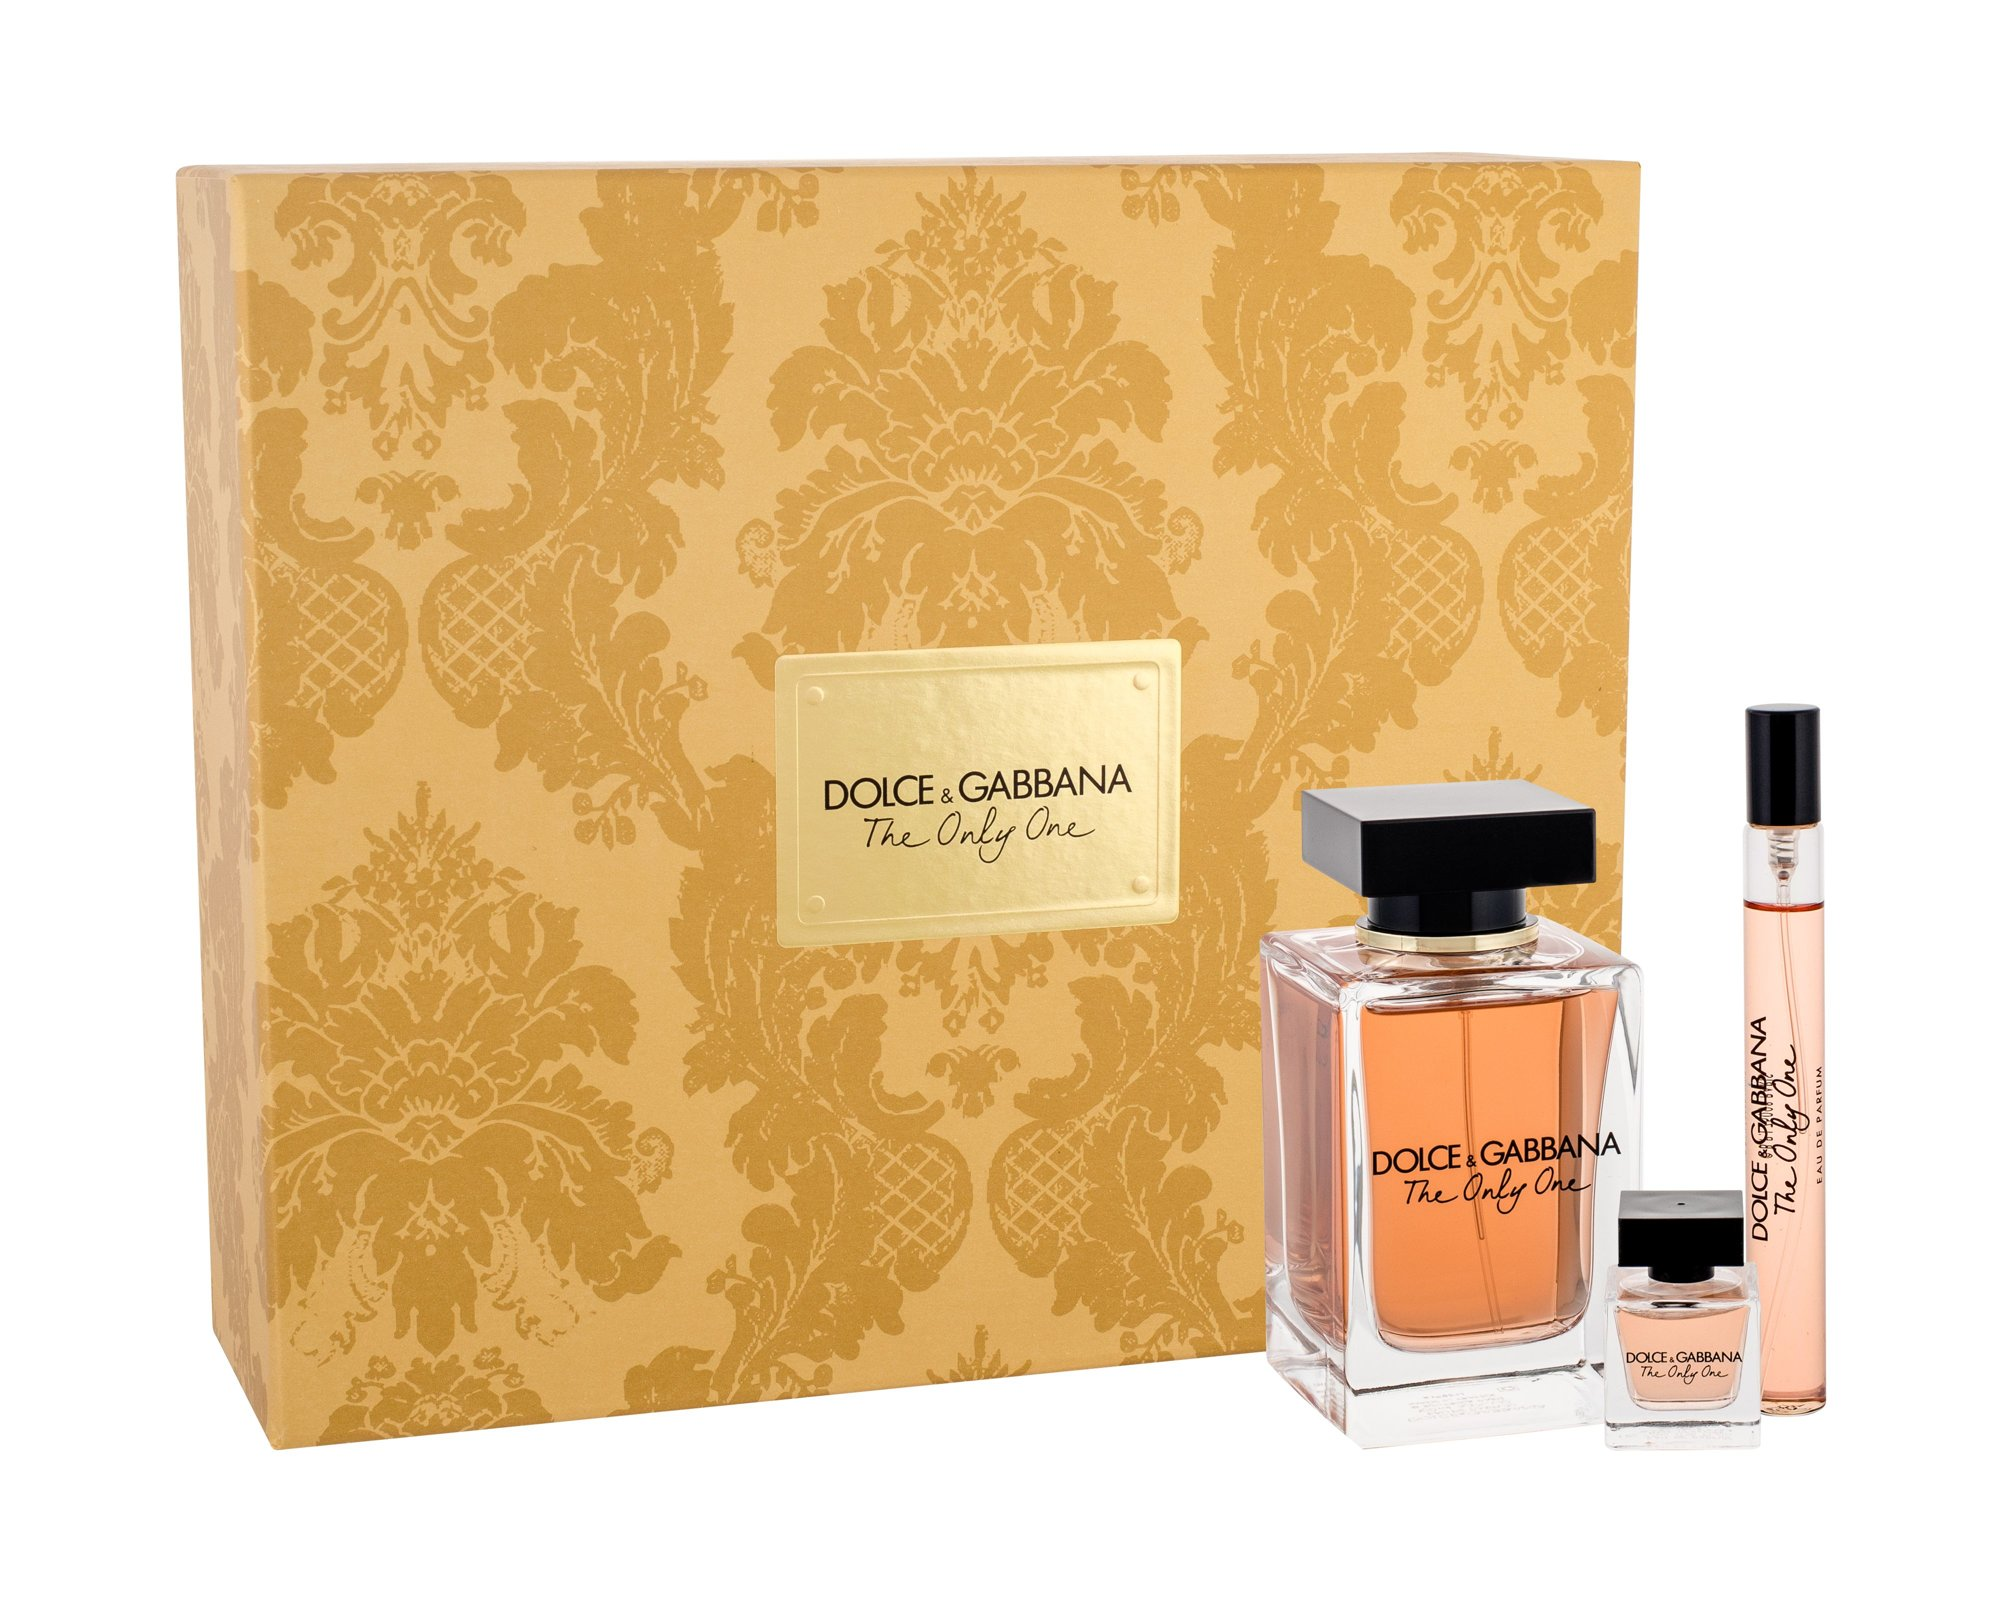 Dolce&Gabbana The Only One Eau de Parfum 100ml